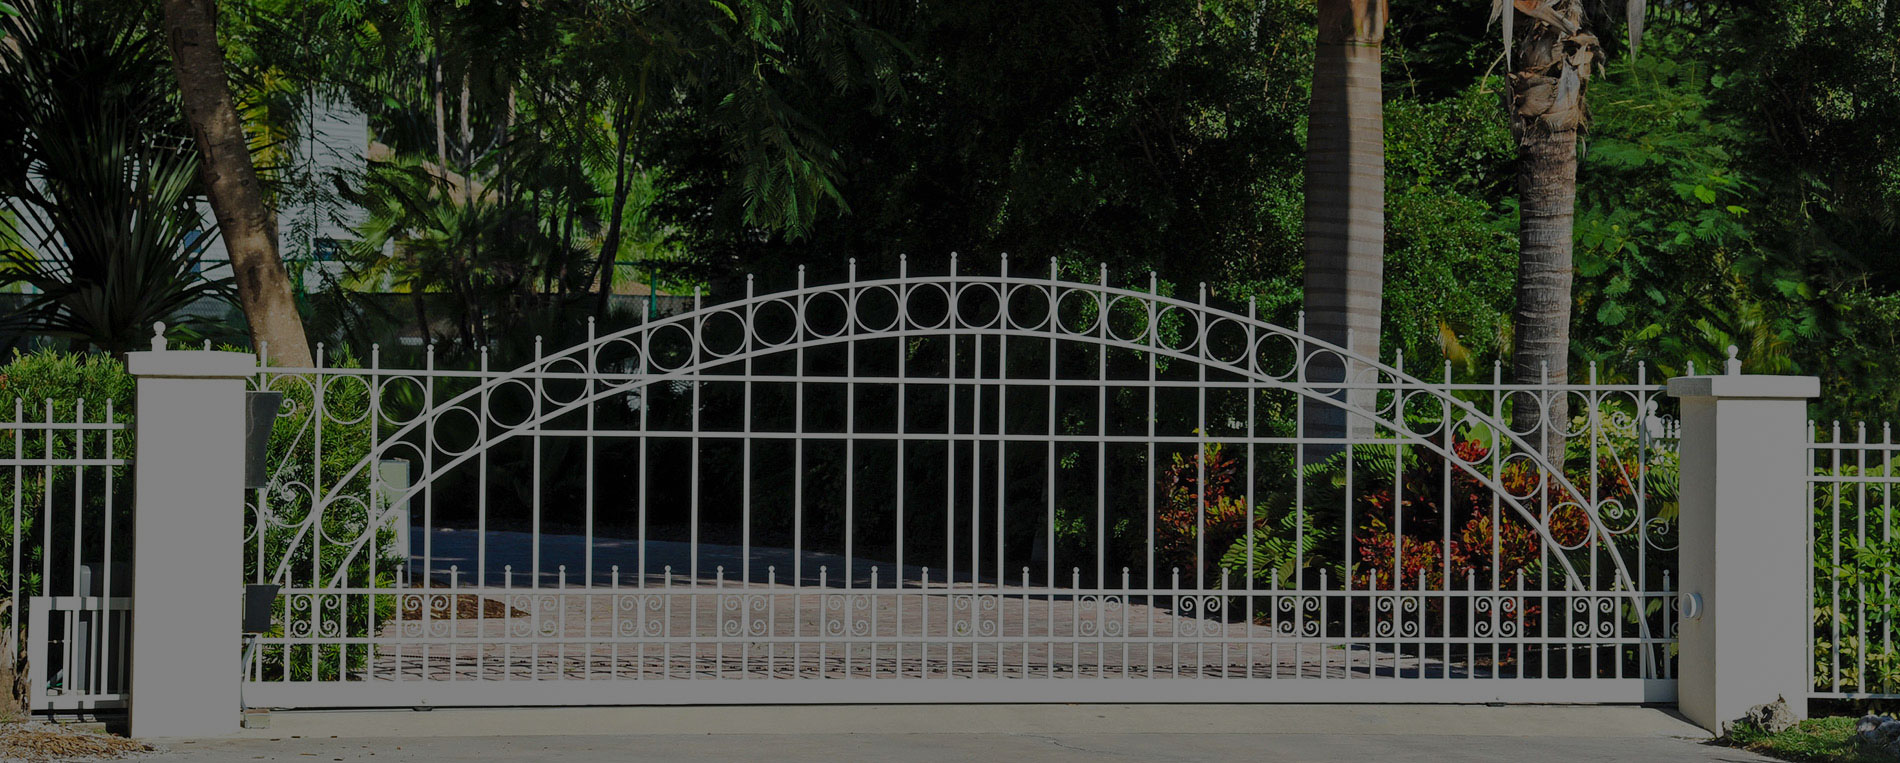 New Gate Installation